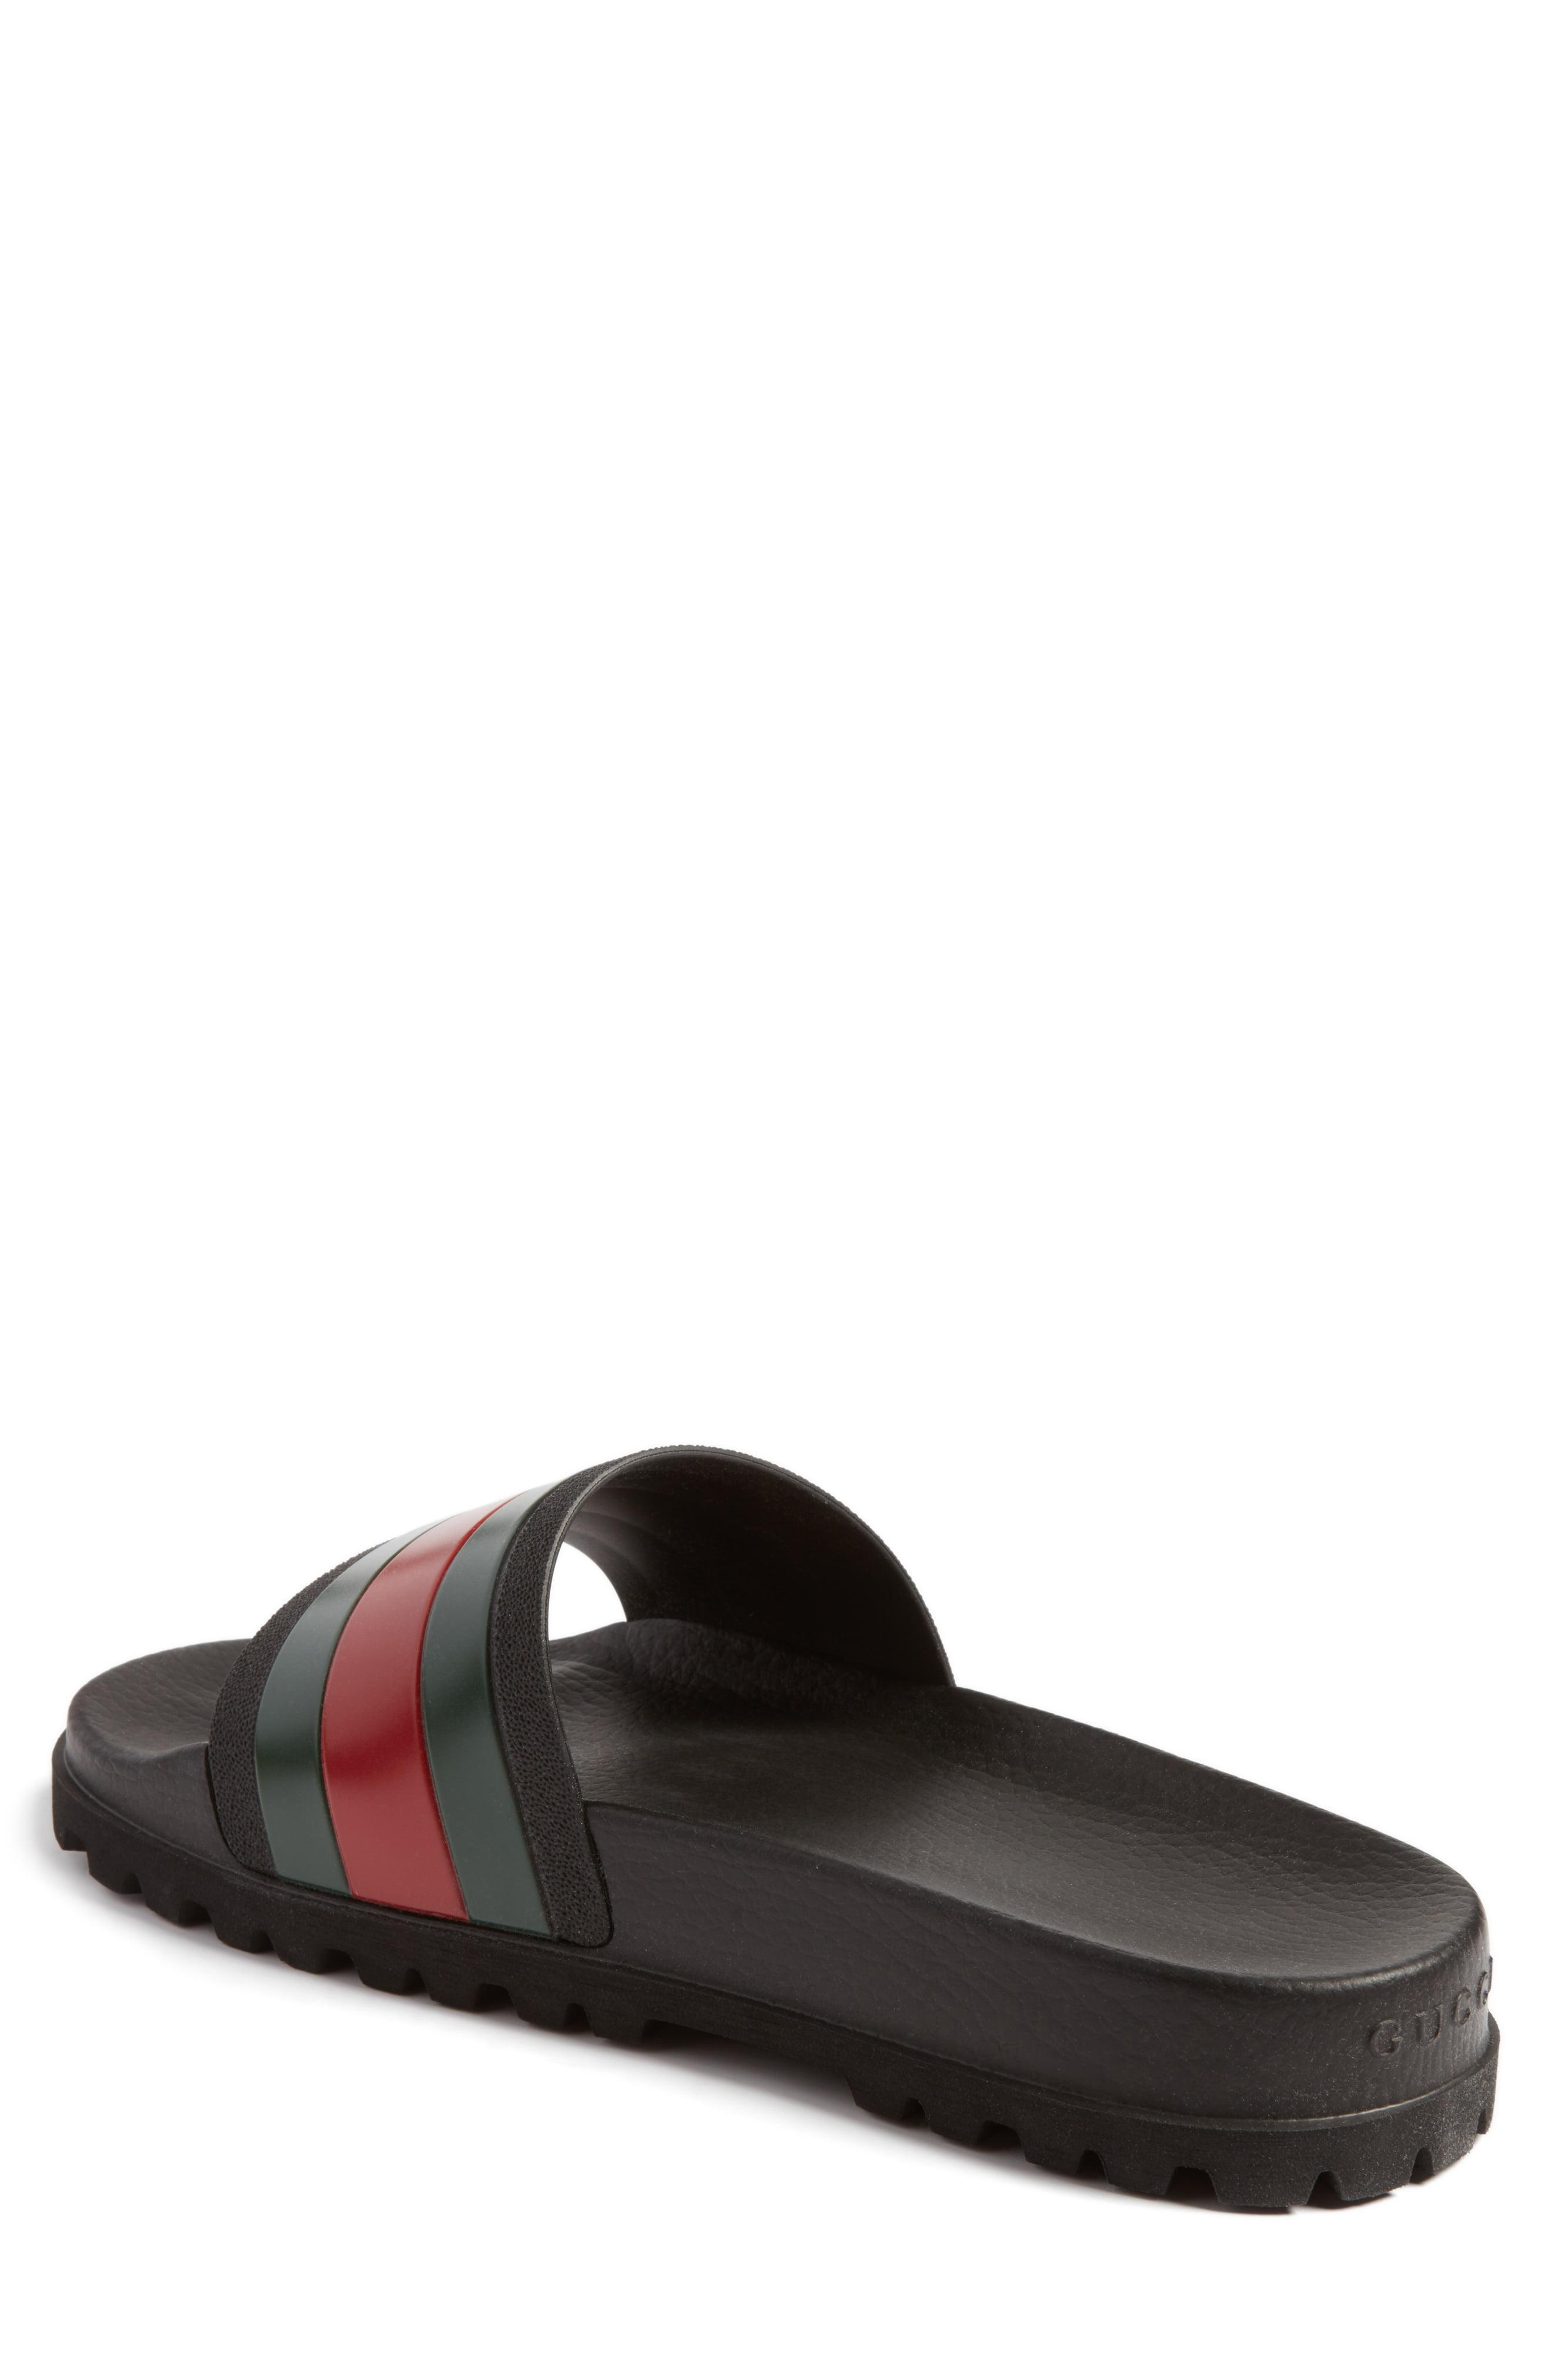 906303f96c0 Gucci - Black Striped Rubber Slides for Men - Lyst. View fullscreen